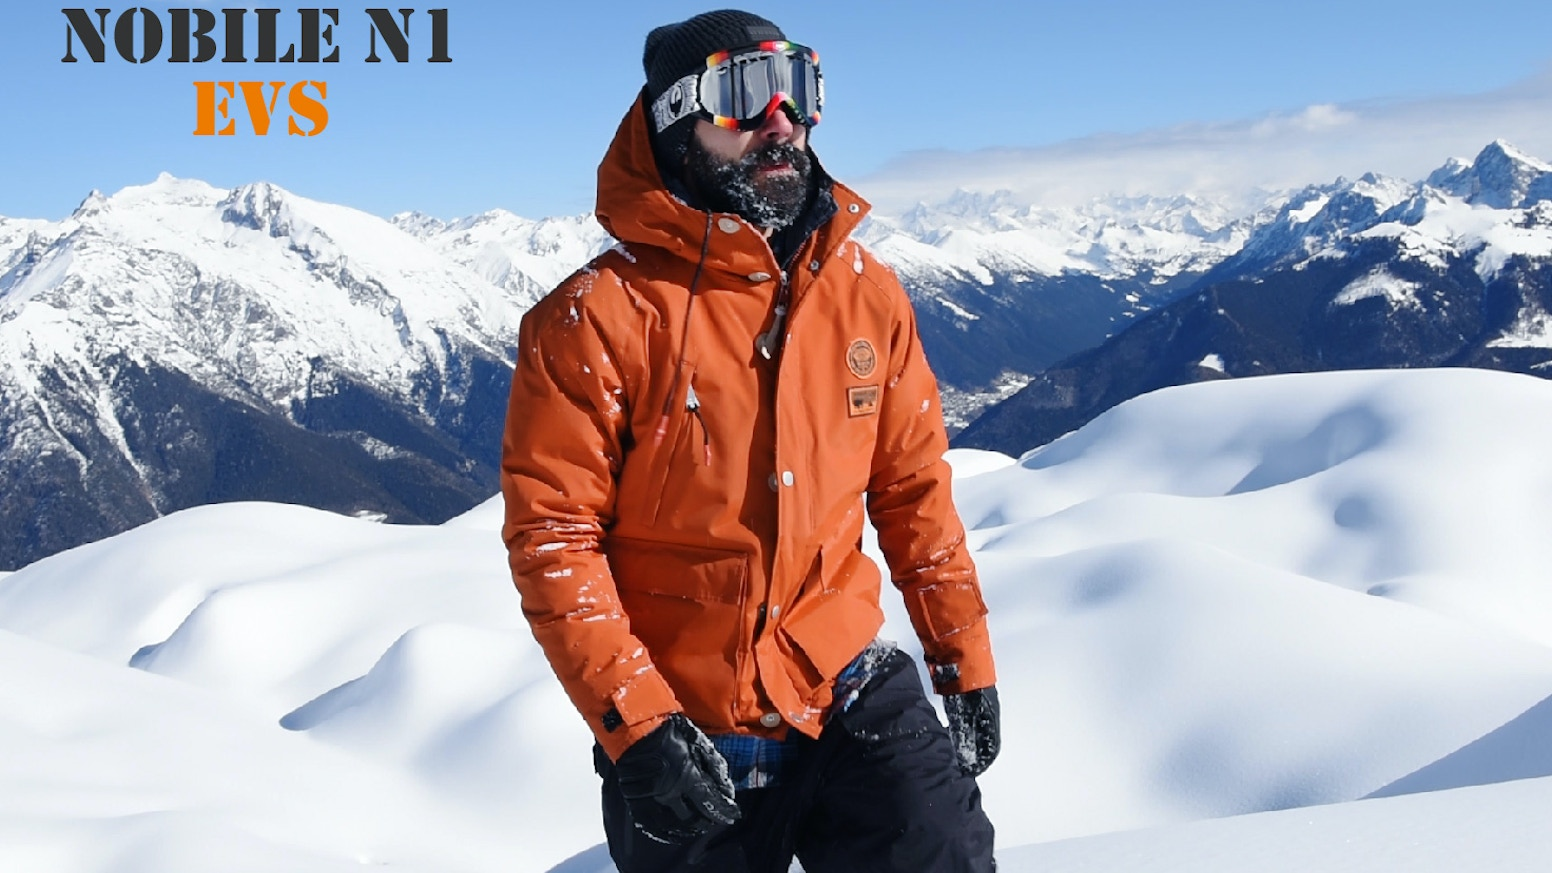 Nobile N1 EVS Jacket is a sports jacket, perfect for urban and outdoor environments with a series of unique technical features!